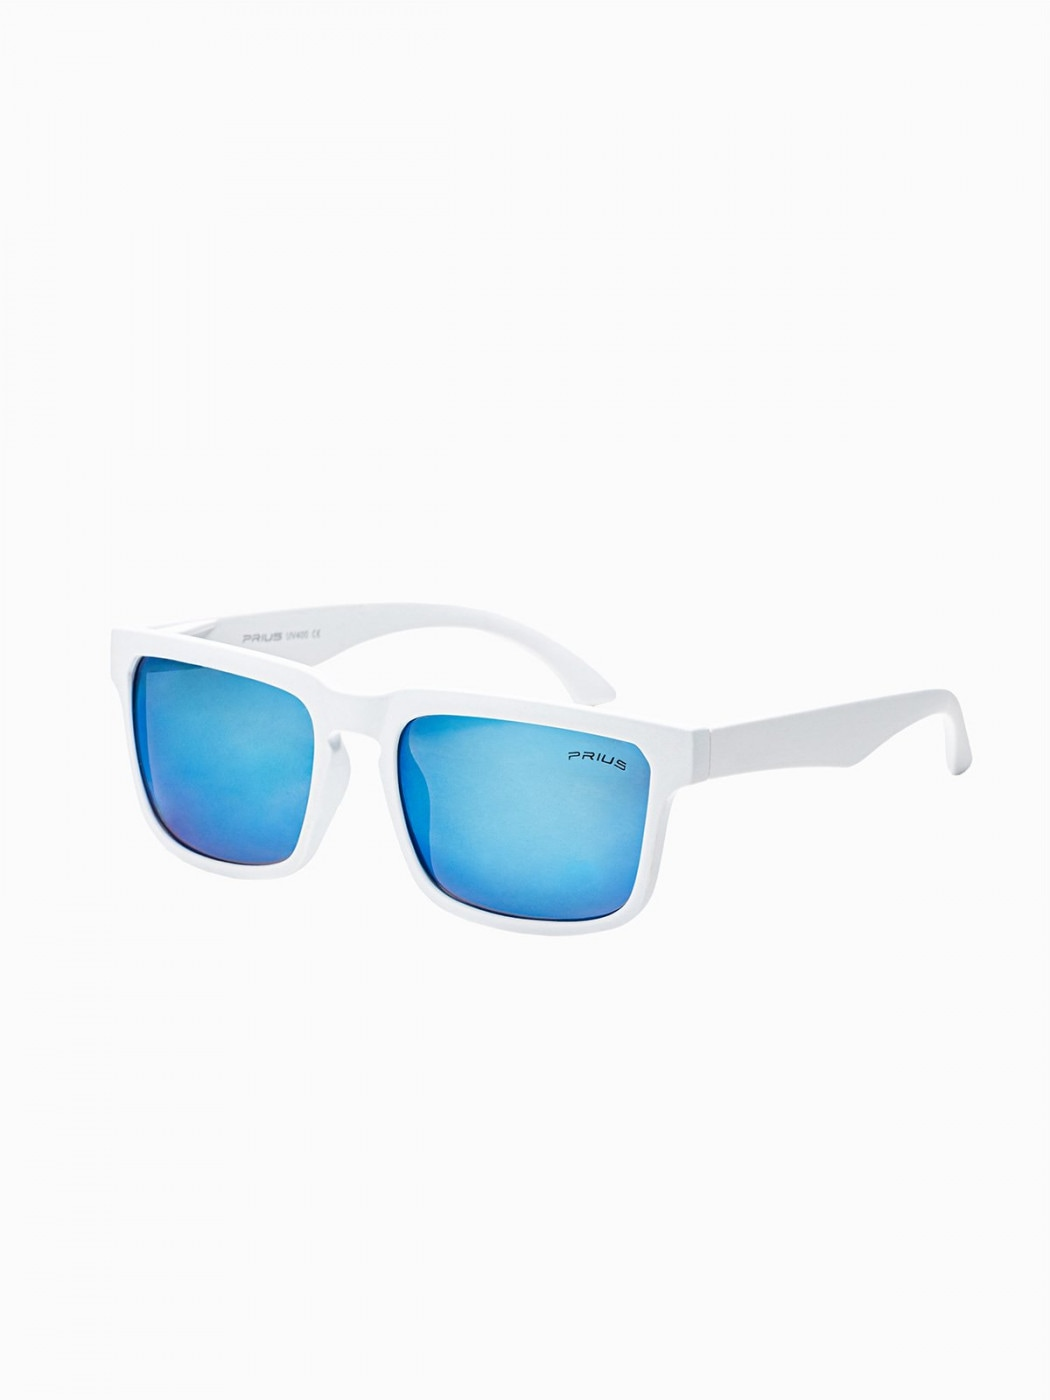 Men's sunglasess Ombre A284